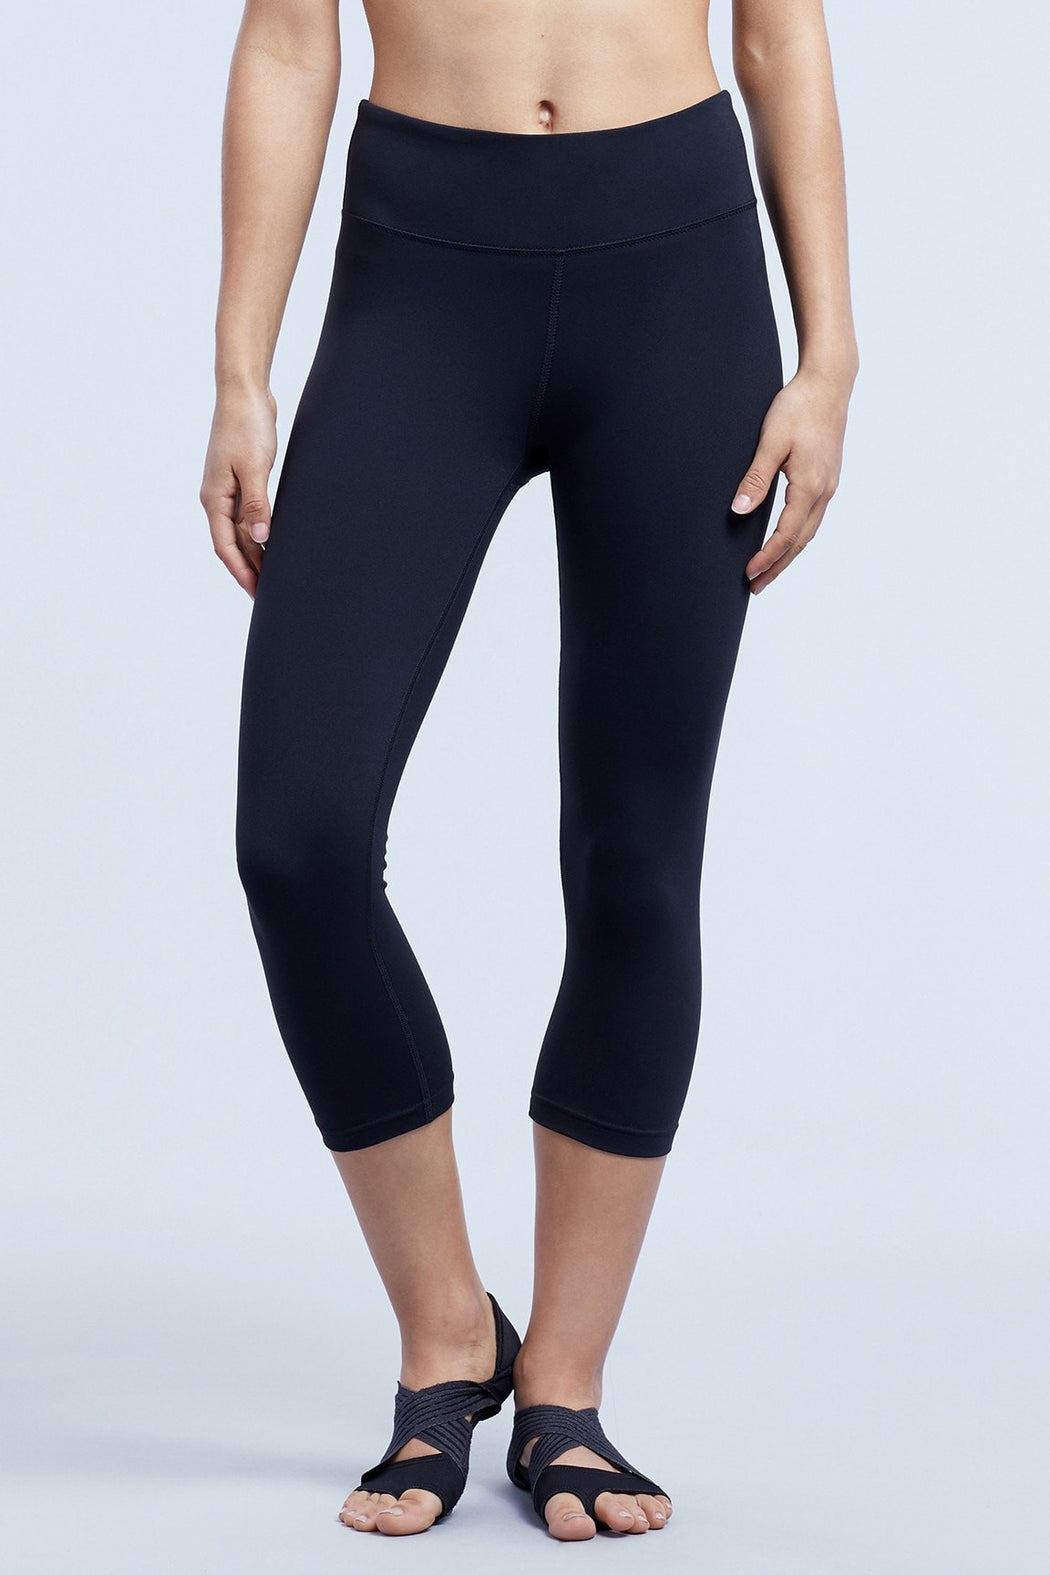 Straight Leg Capri Leggings